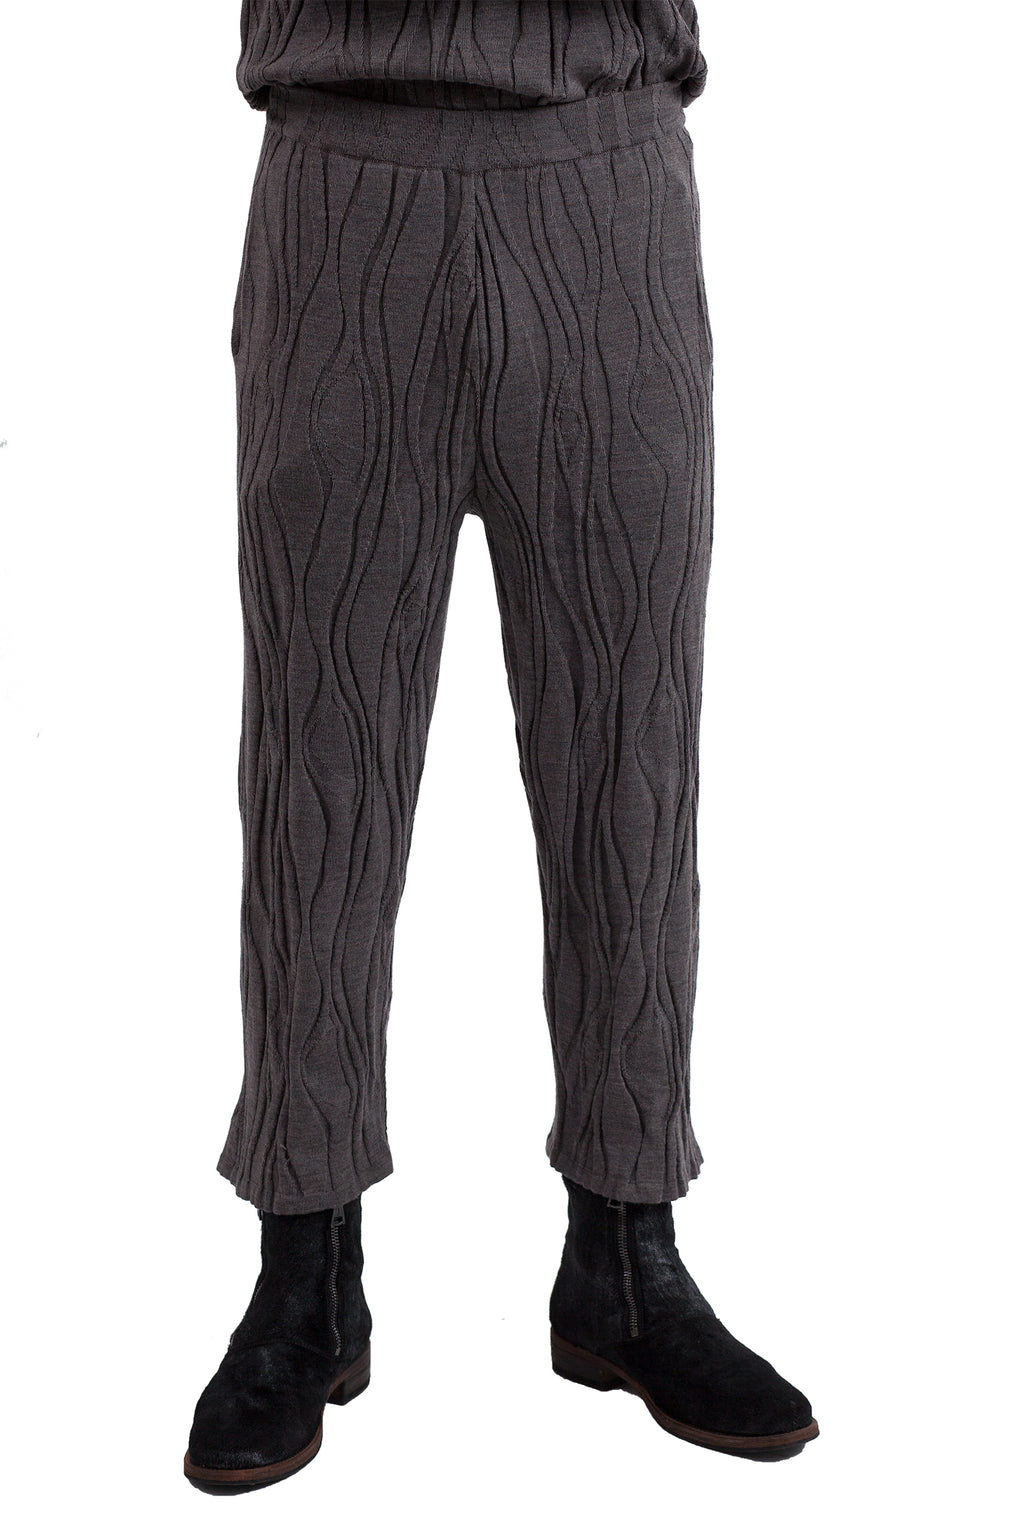 Wood Knit Pants - Grey